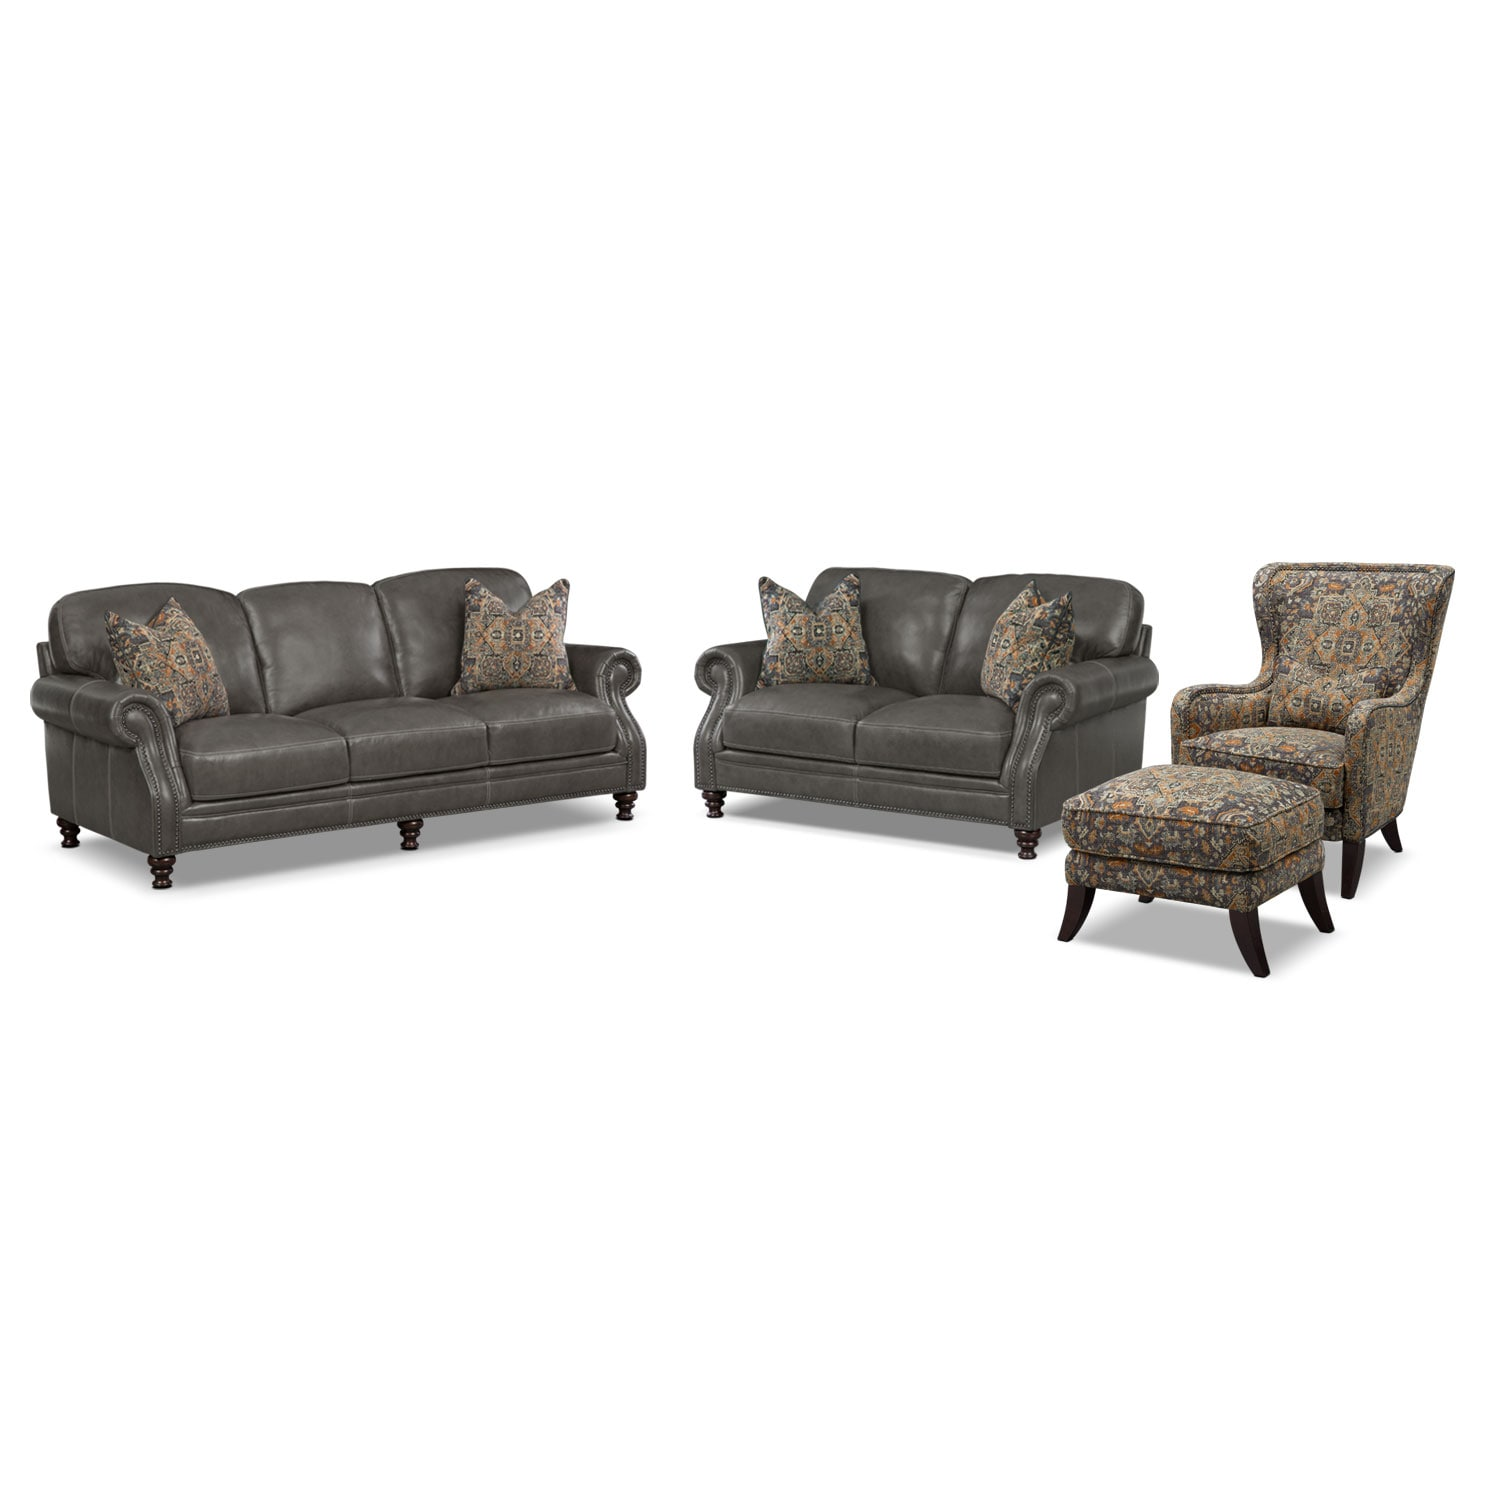 Living Room Furniture - Carrington Charcoal 4 Pc. Living Room